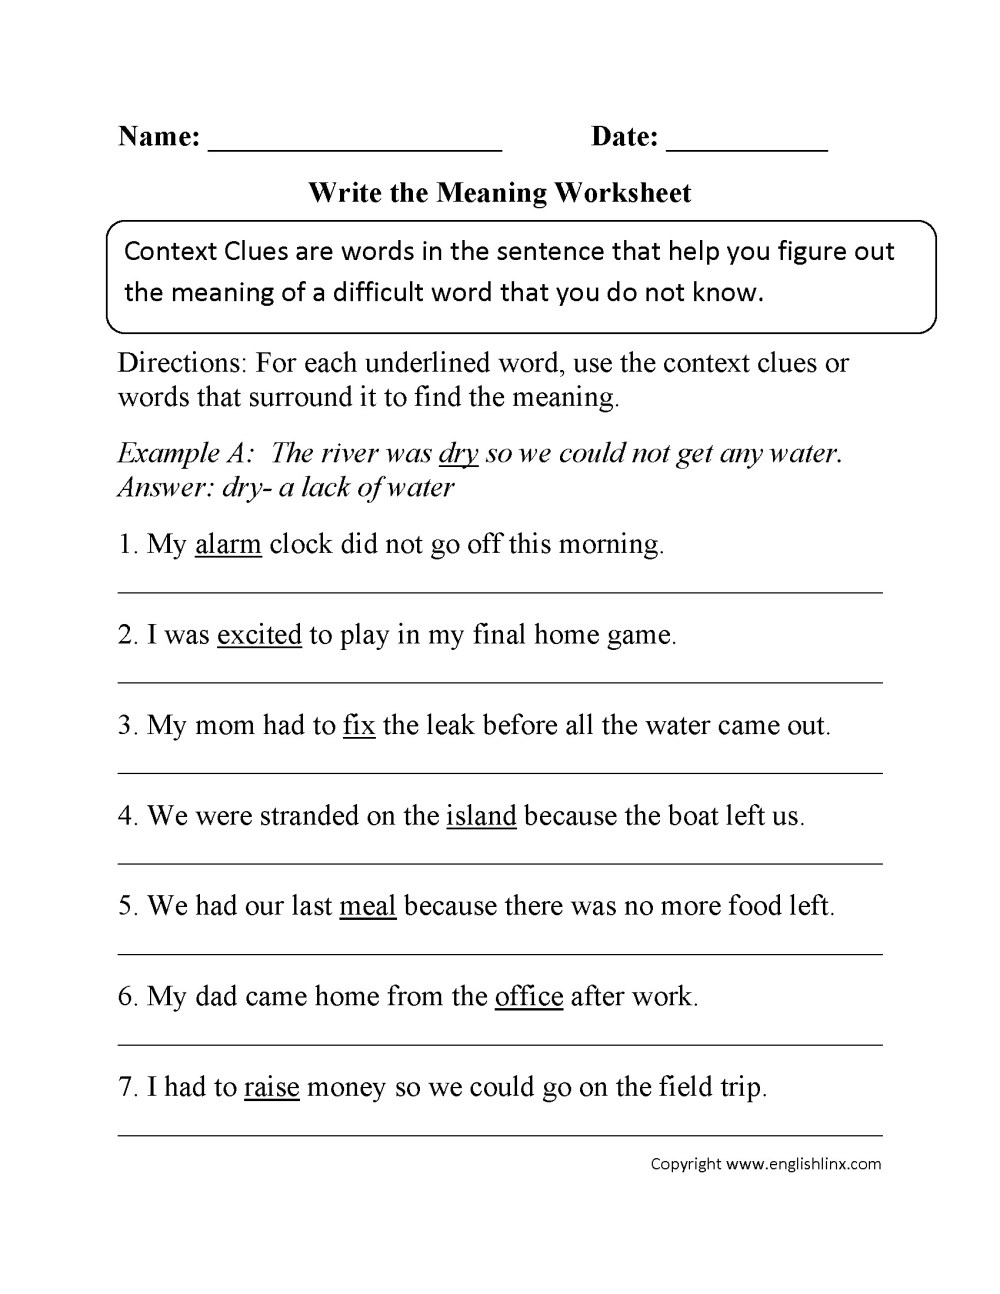 medium resolution of Sample Worksheet For Context Clues   Printable Worksheets and Activities  for Teachers